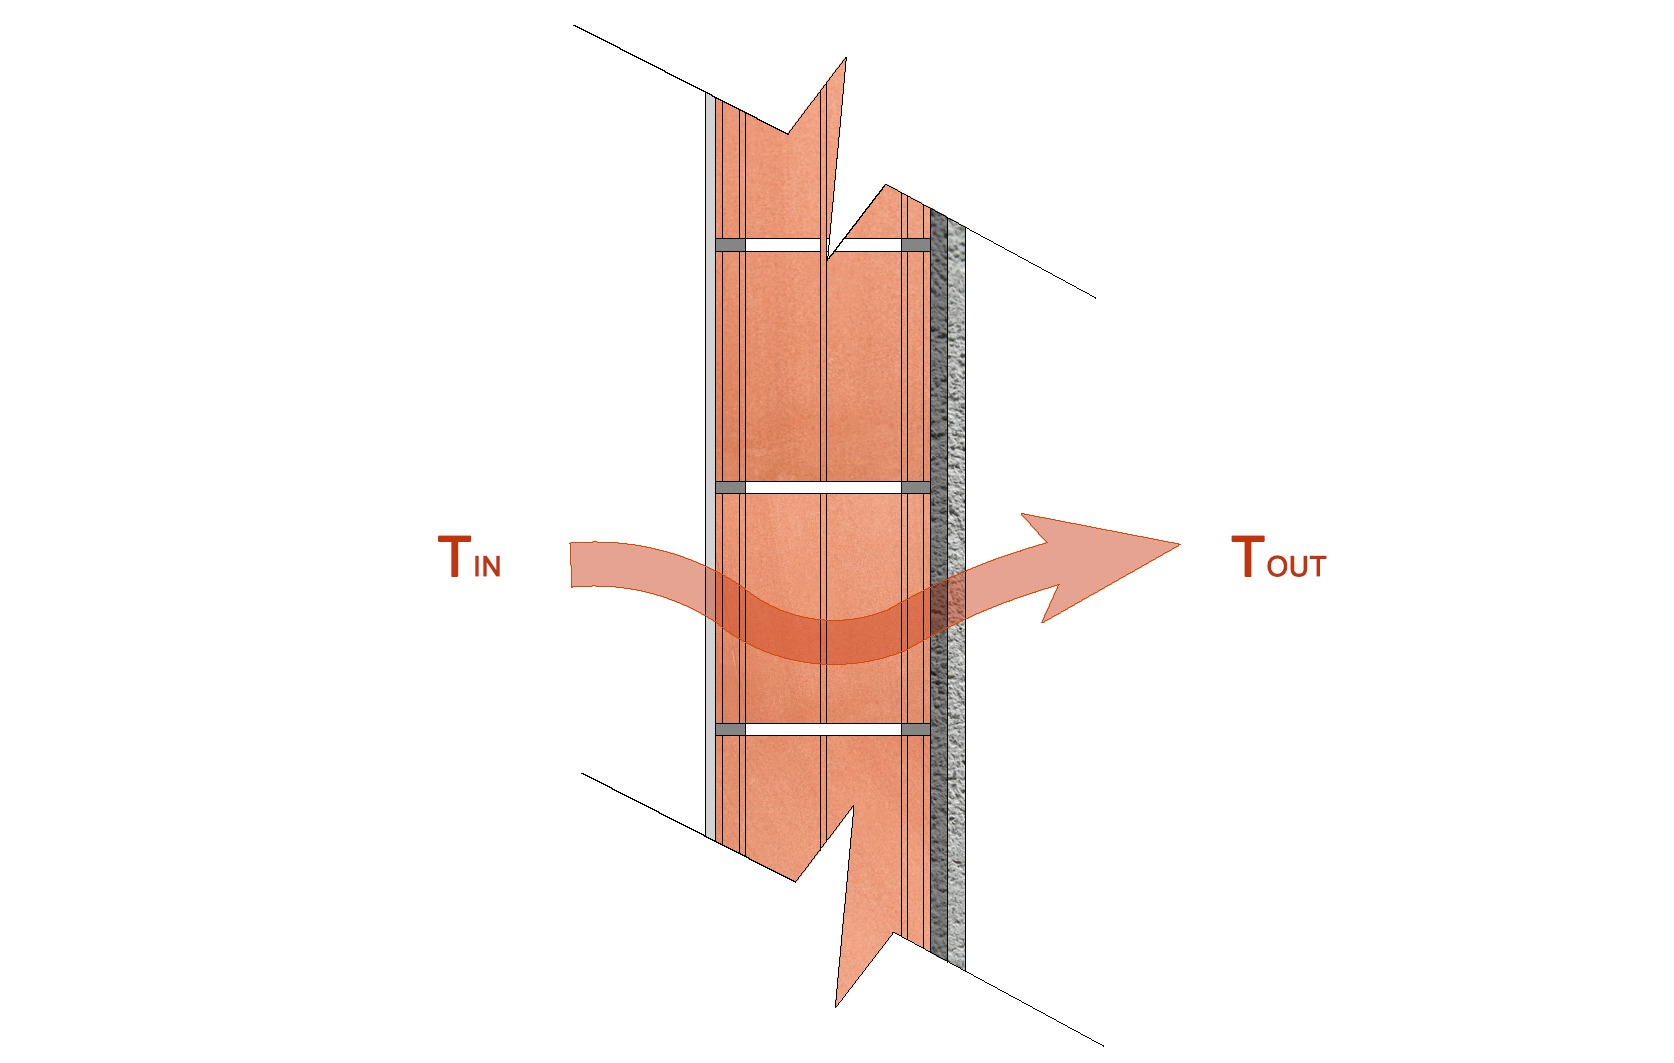 How to Calculate the Thermal Transmittance (U-Value) in the Envelope of a Building